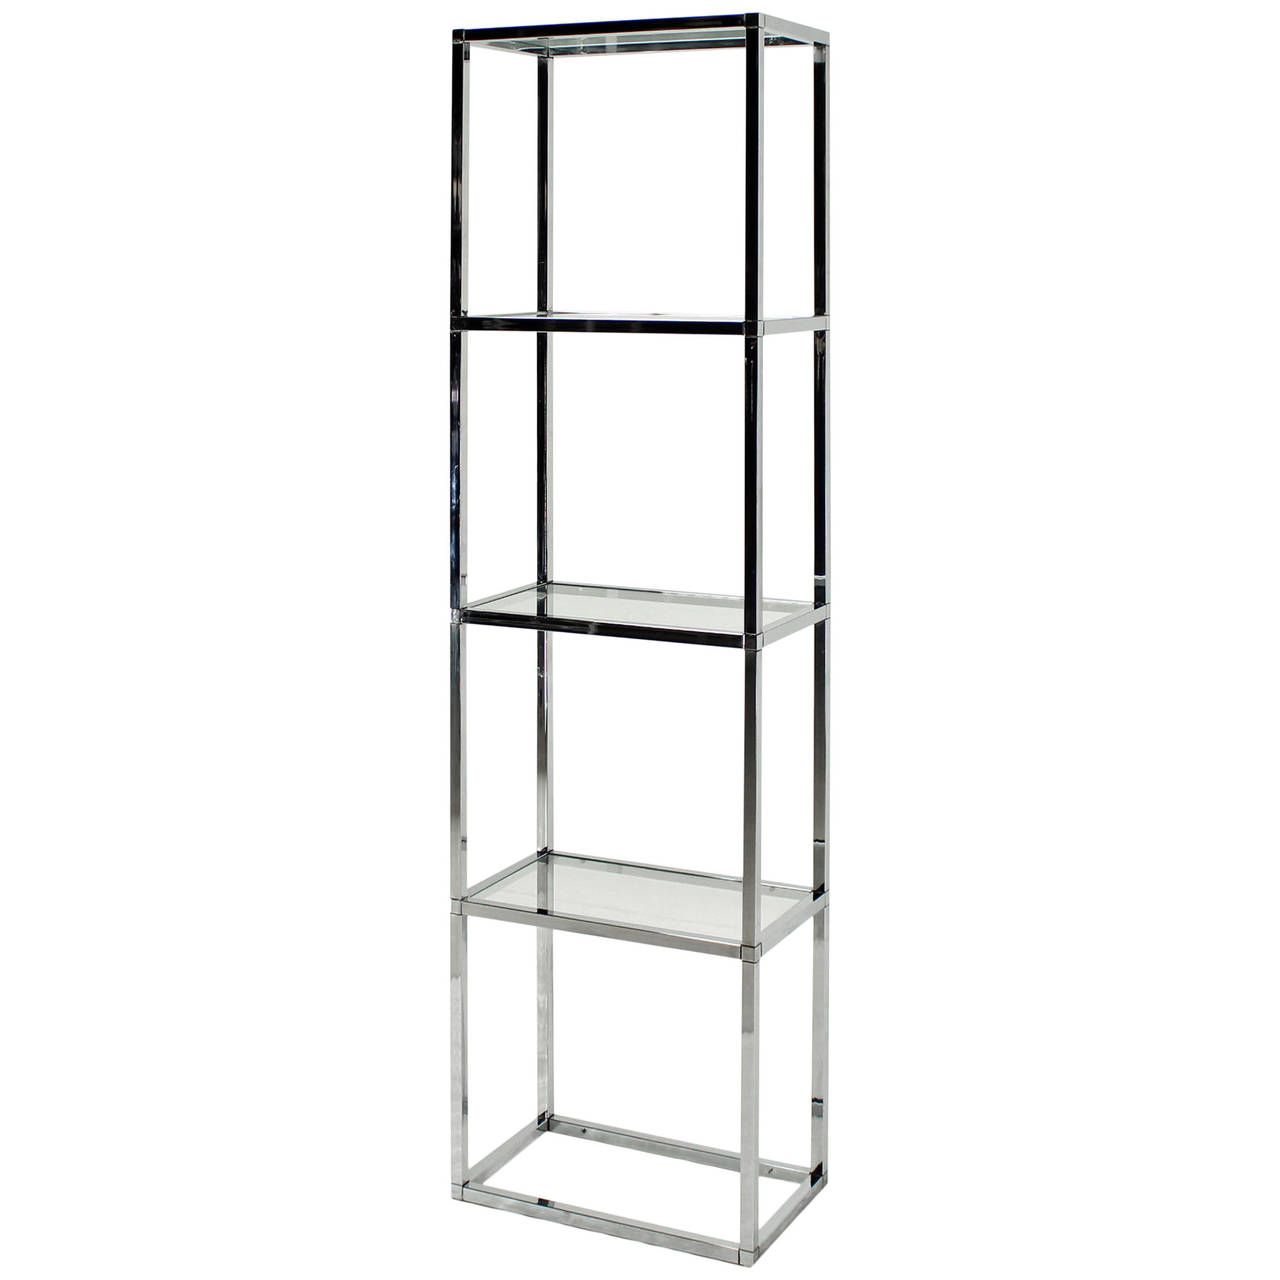 narrow and tall midcentury modern chrome and glass etagere shelf  - narrow and tall midcentury modern chrome and glass etagere shelf